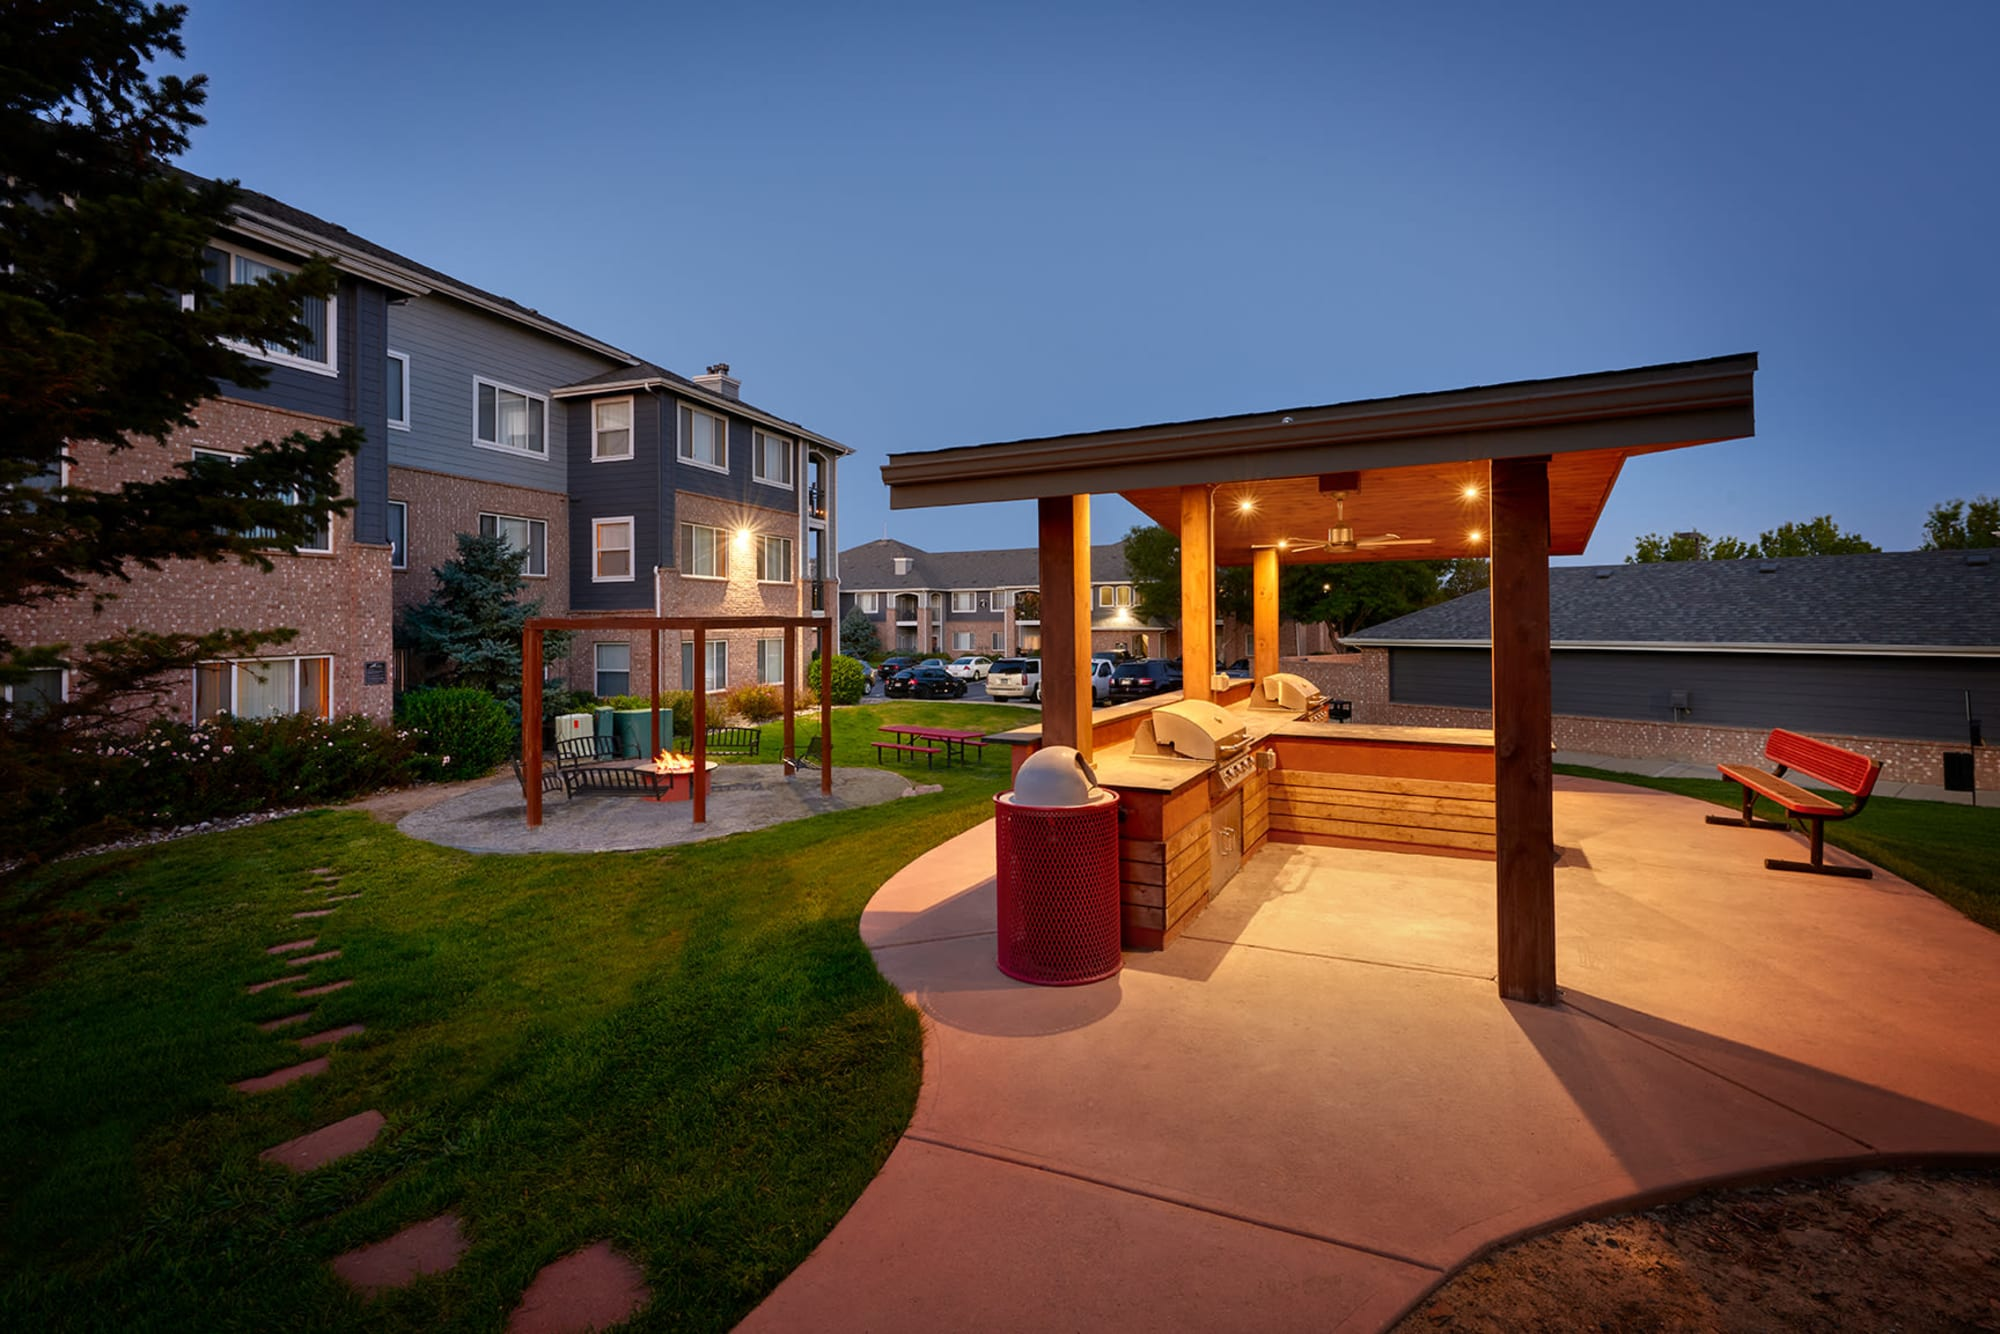 The outdoor picnic area with a firepit, swings, and BBQs at Hawthorne Hill Apartments in Thornton, Colorado